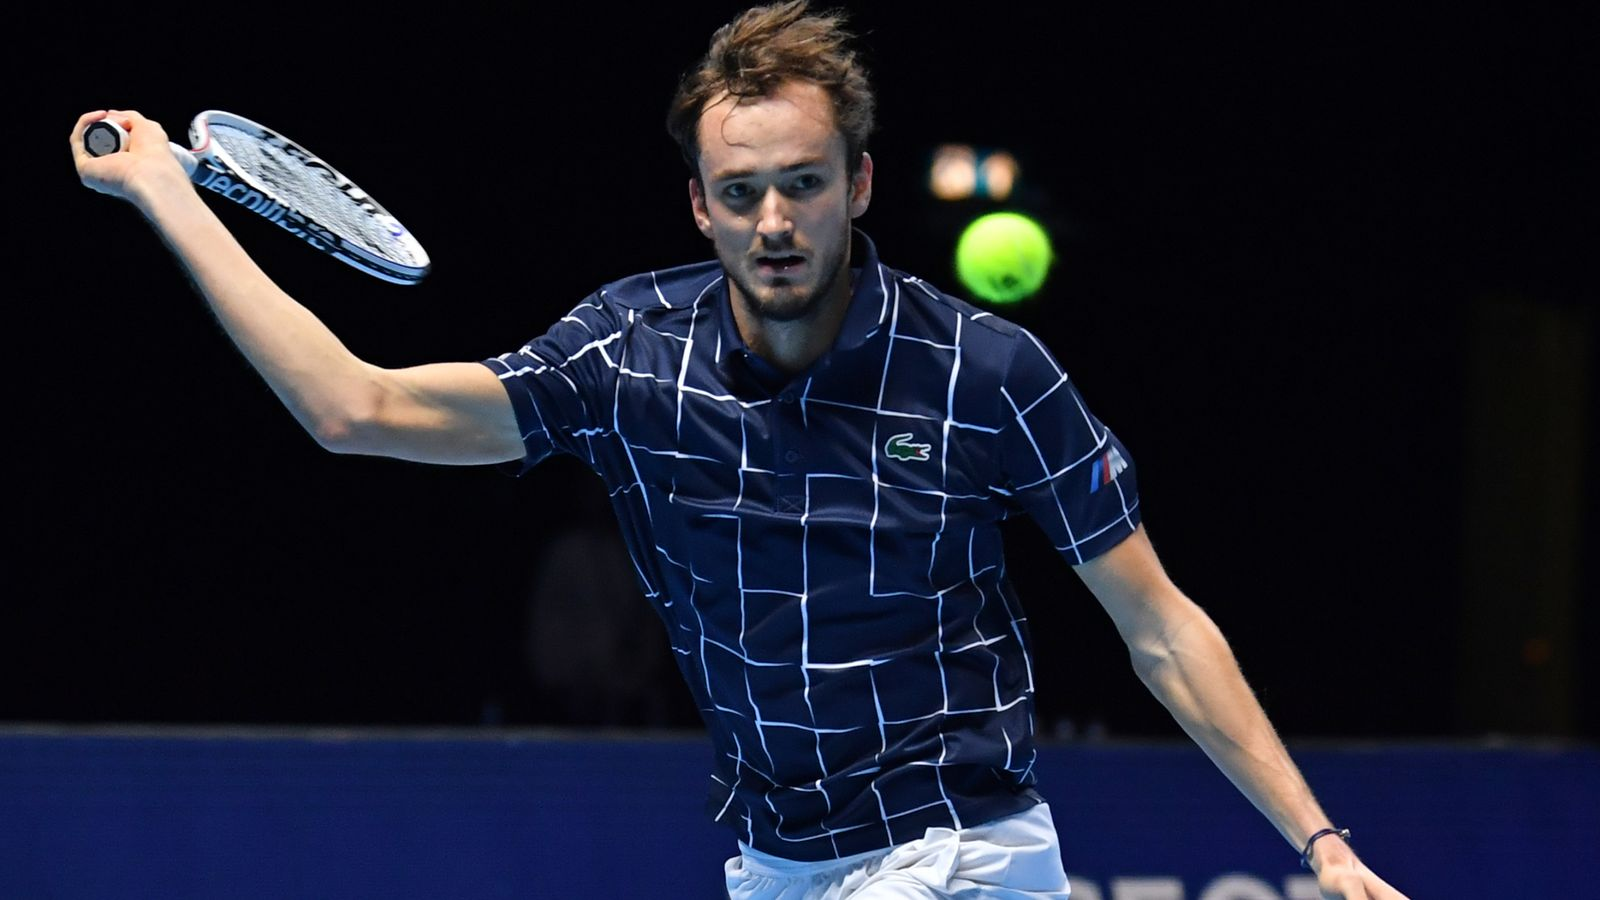 Tennis News: The ATP Championships in Rotterdam with Zverev & Co live on Sky |  Tennis News